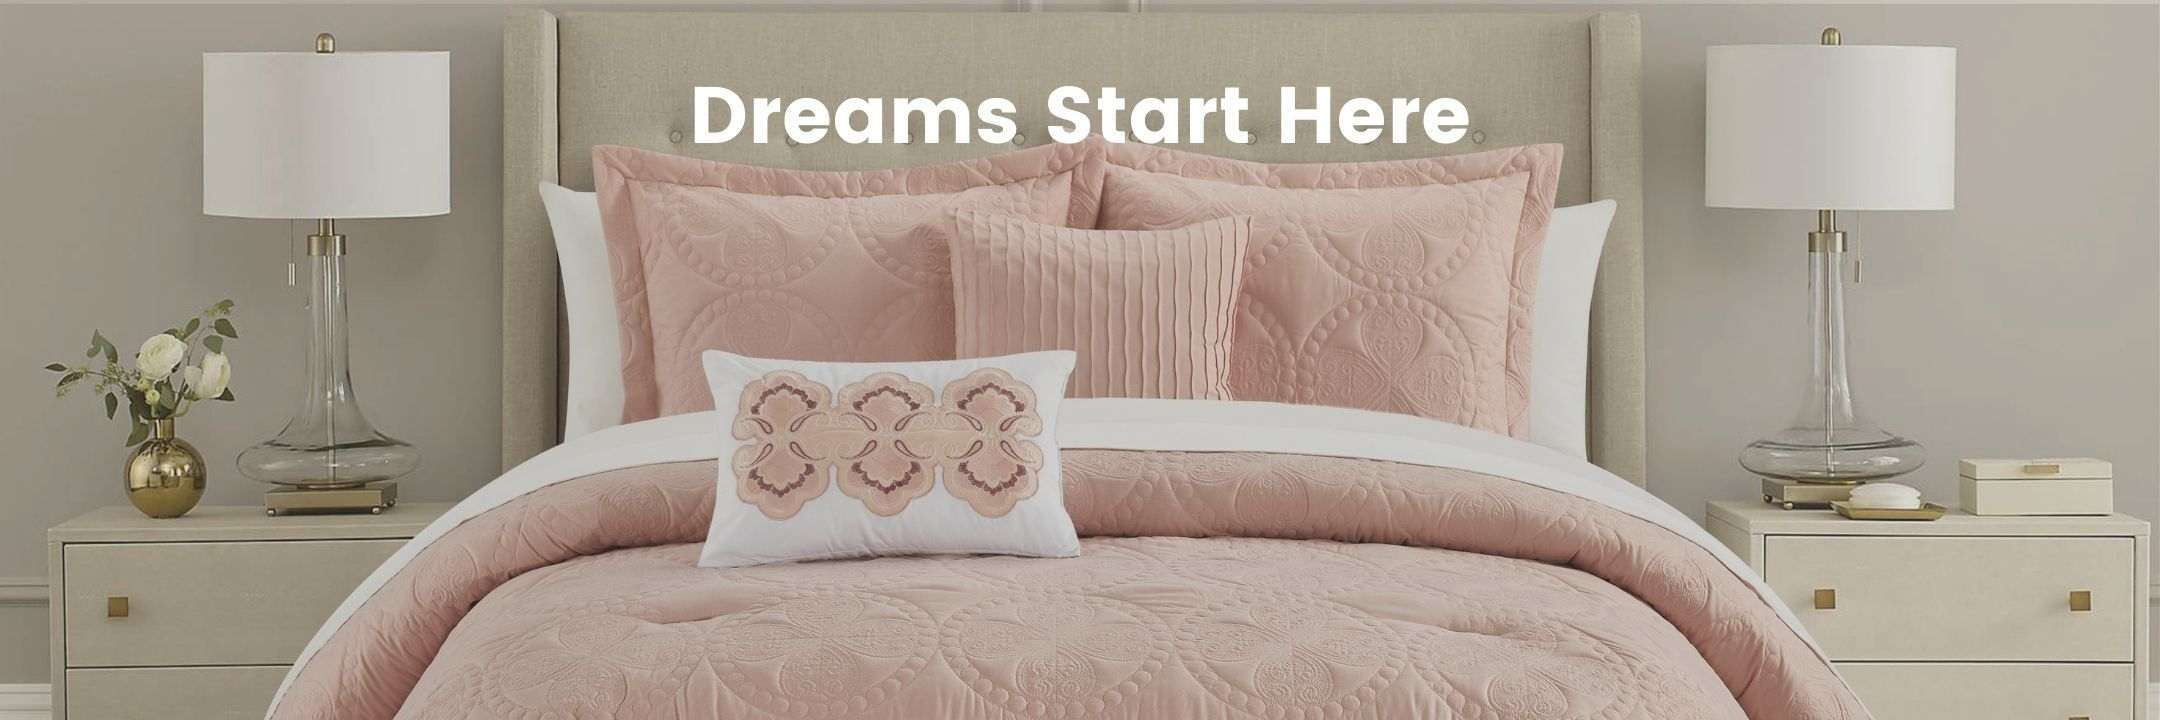 A bed with a blush comforter set on top of it